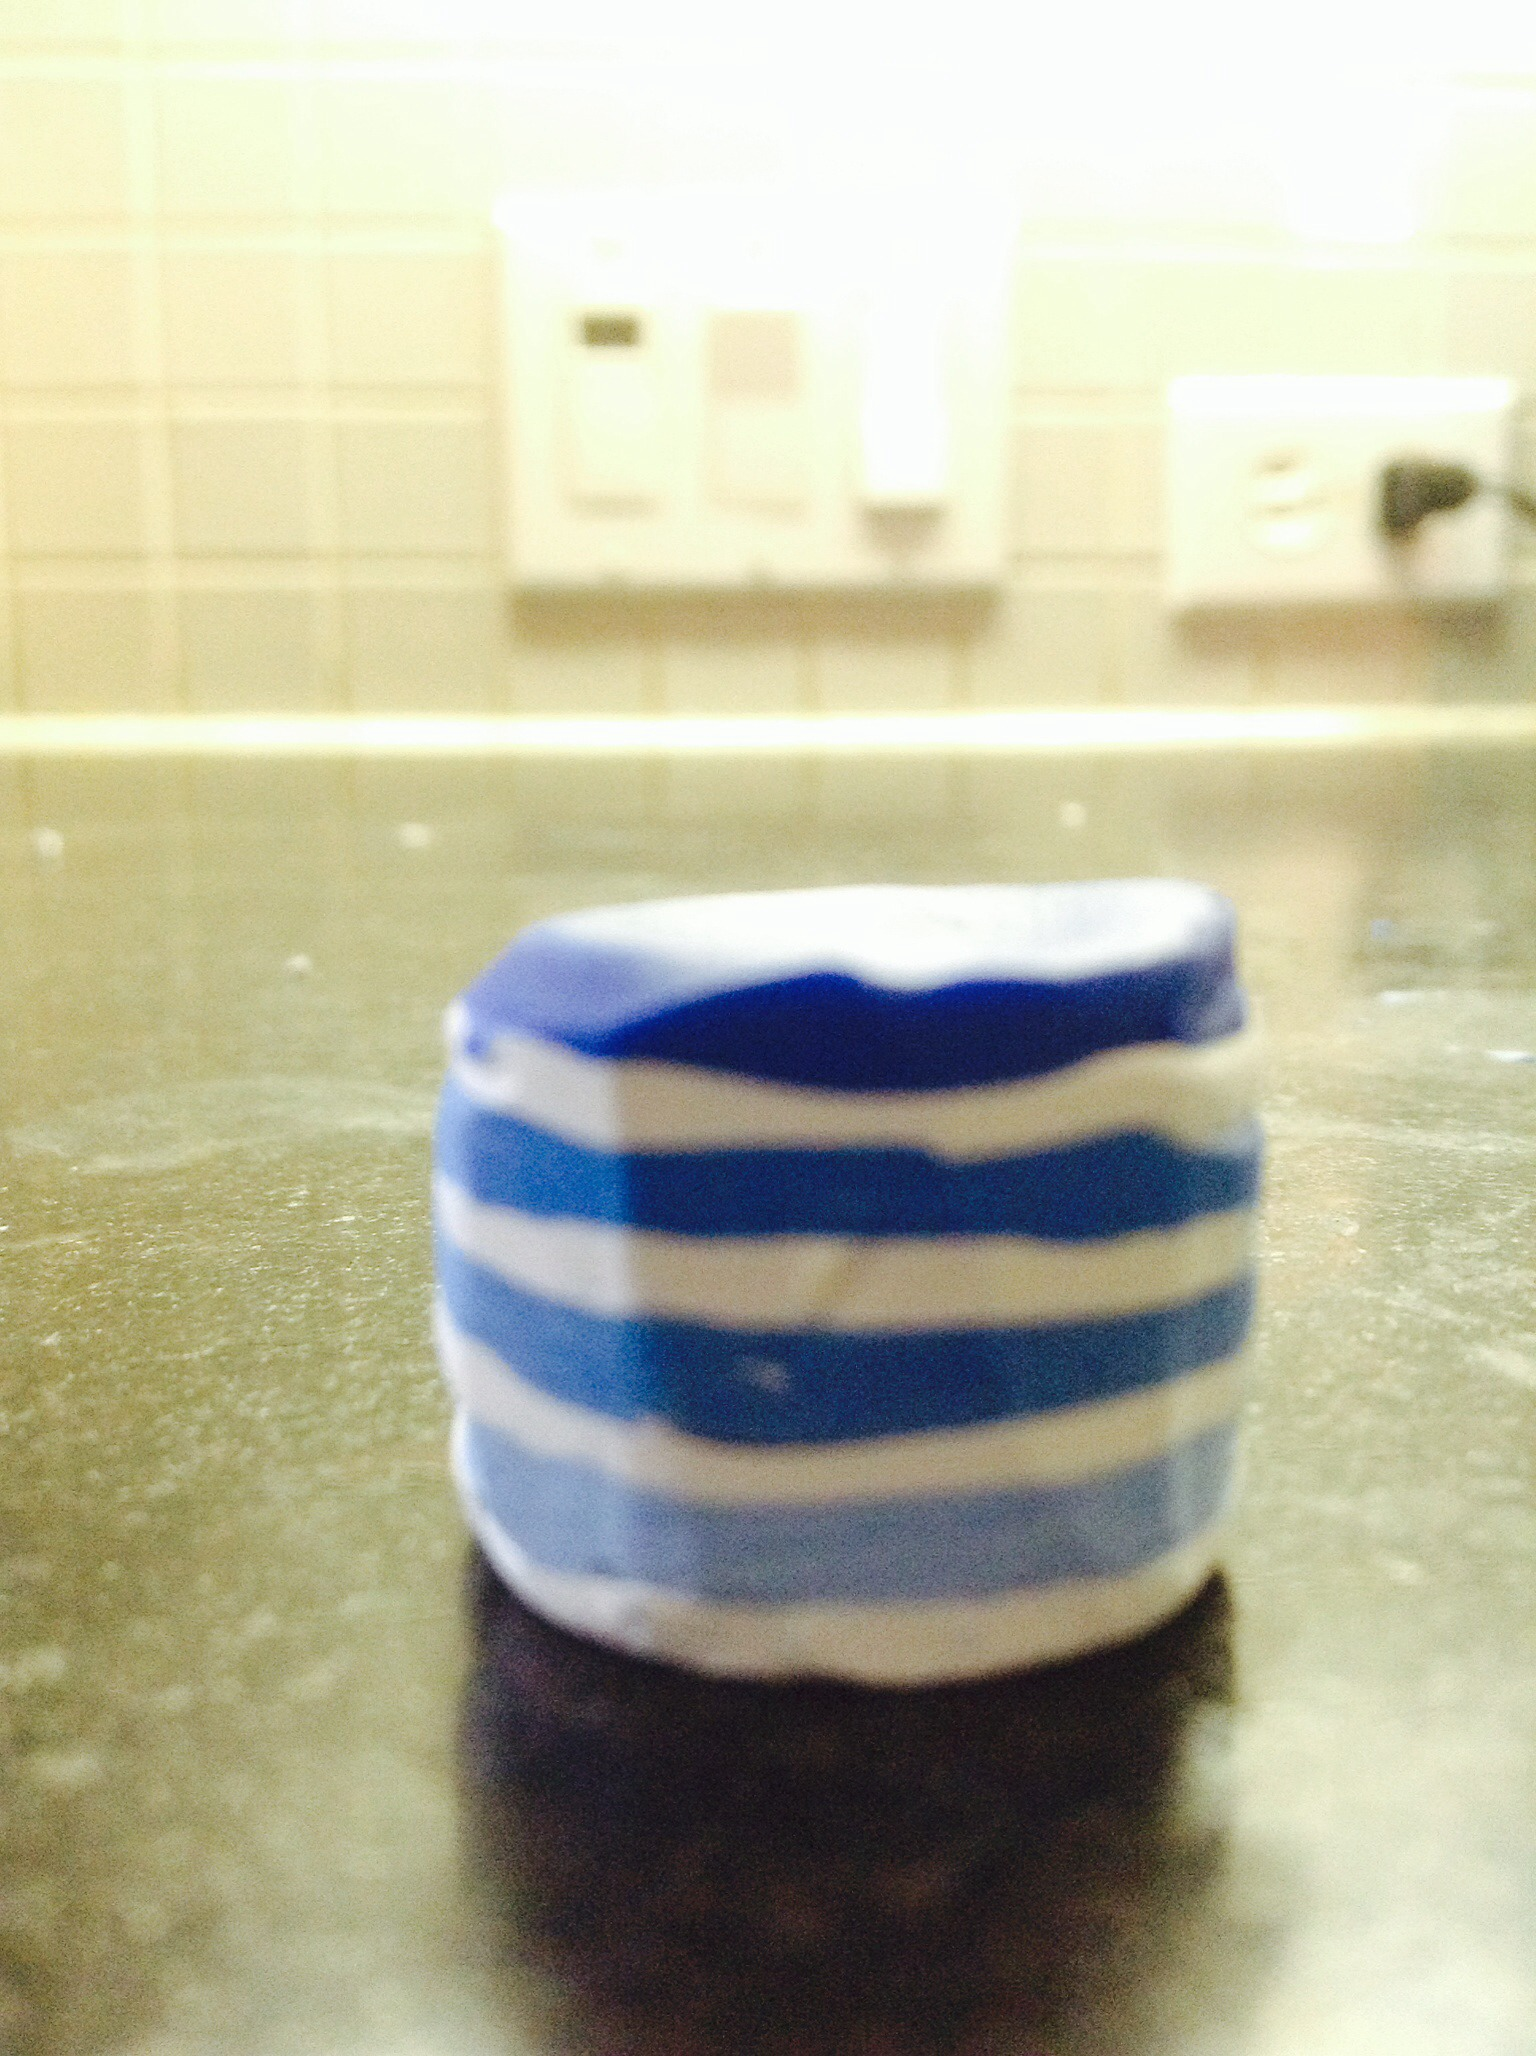 Picture of Take Your Clay and Stack the Blues Lightest to Darkest, and Put White Sheets in Between